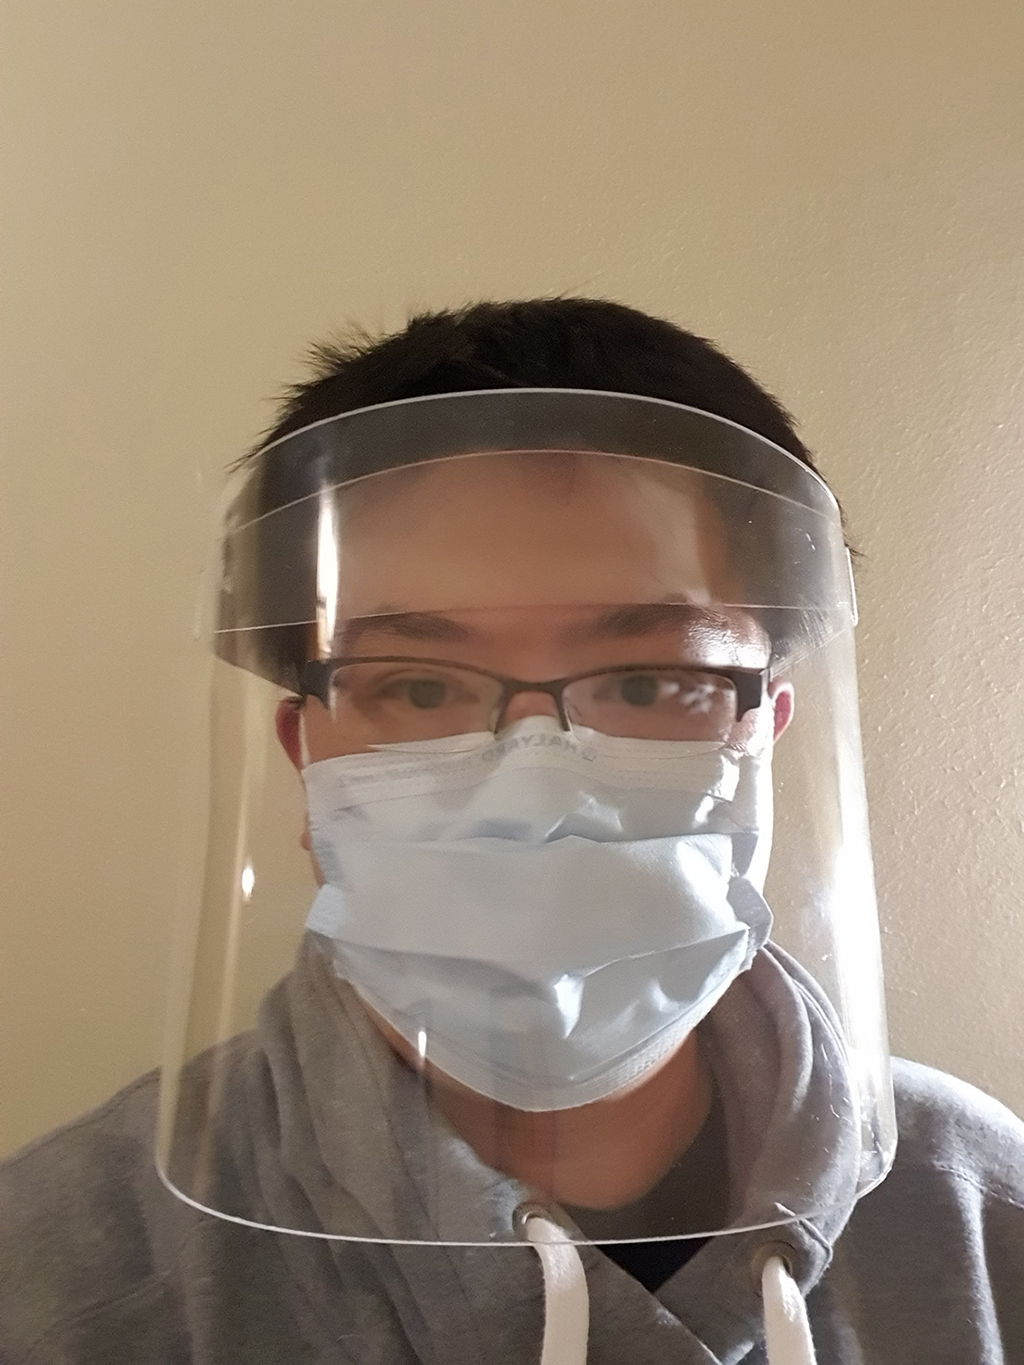 High Quality Acrylic Face Shield For Sale.